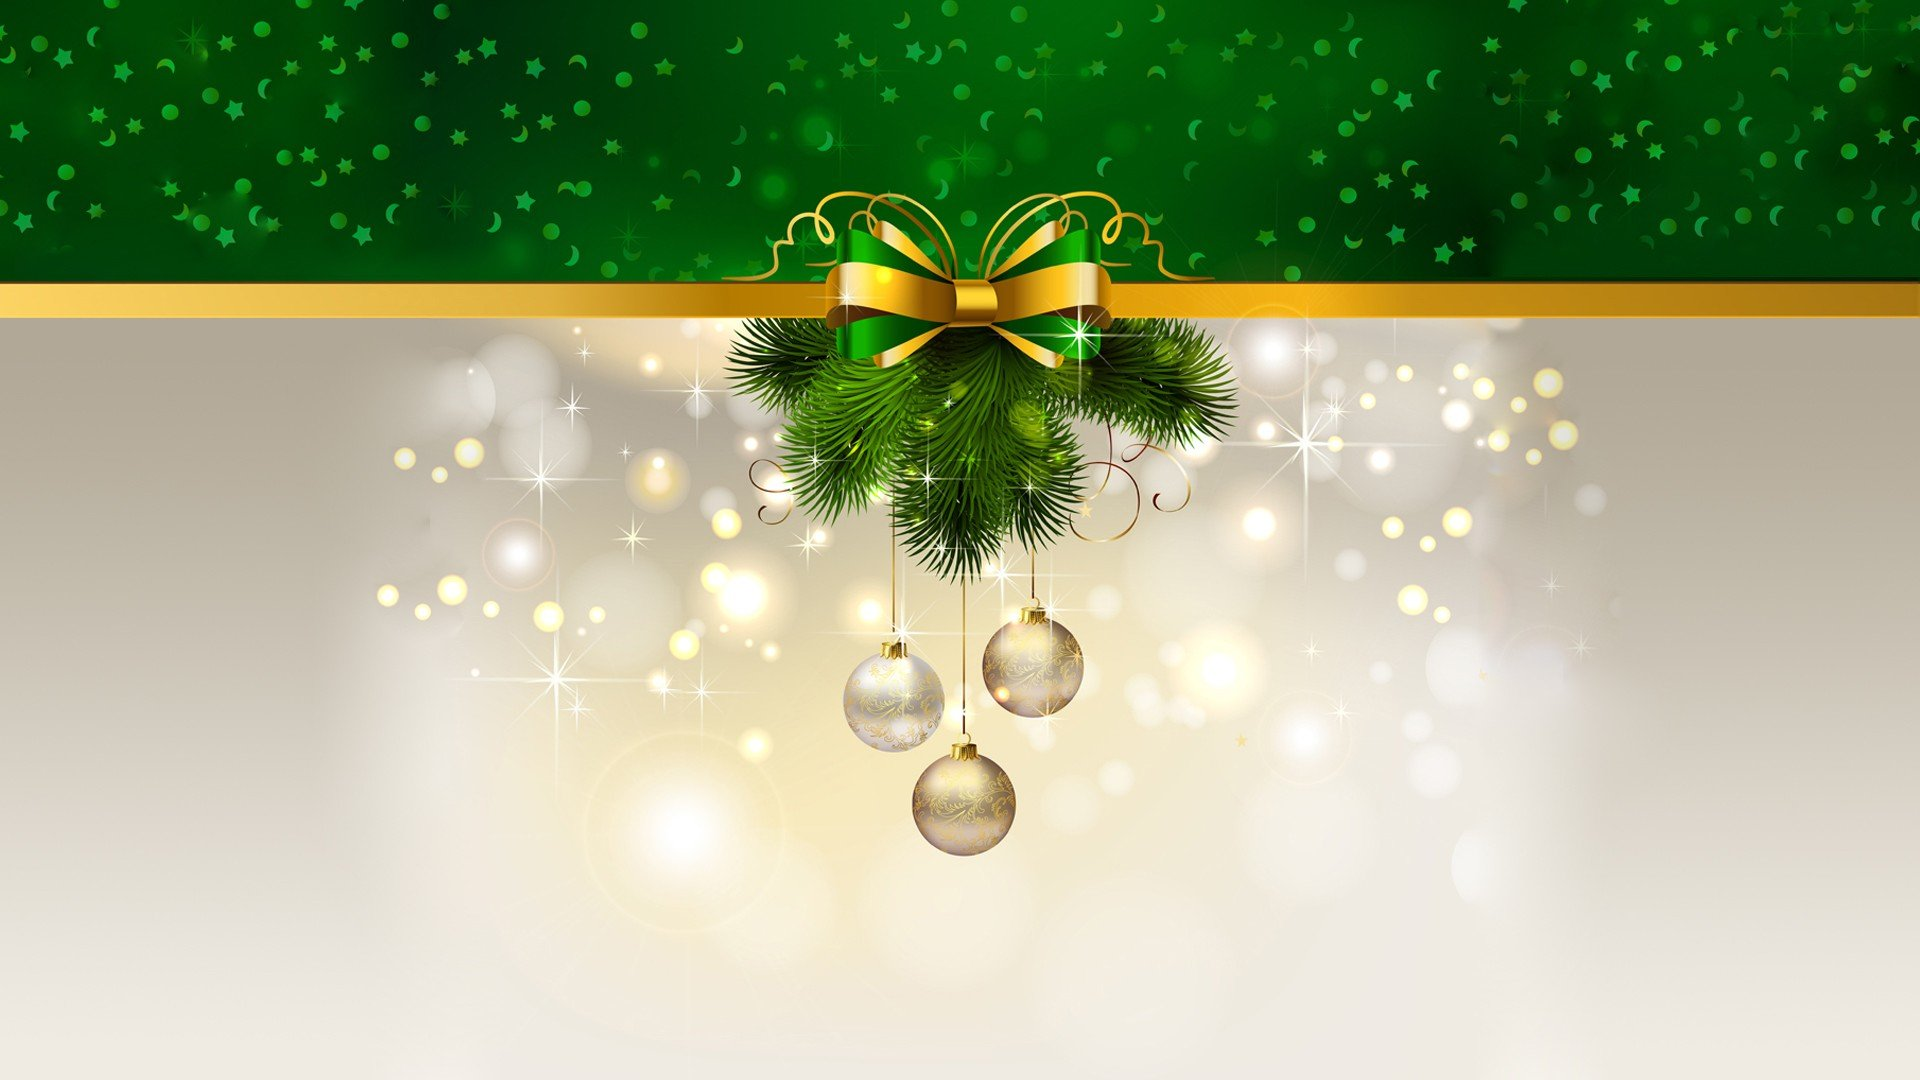 Christmas ornaments, Wreaths, Green HD Wallpapers